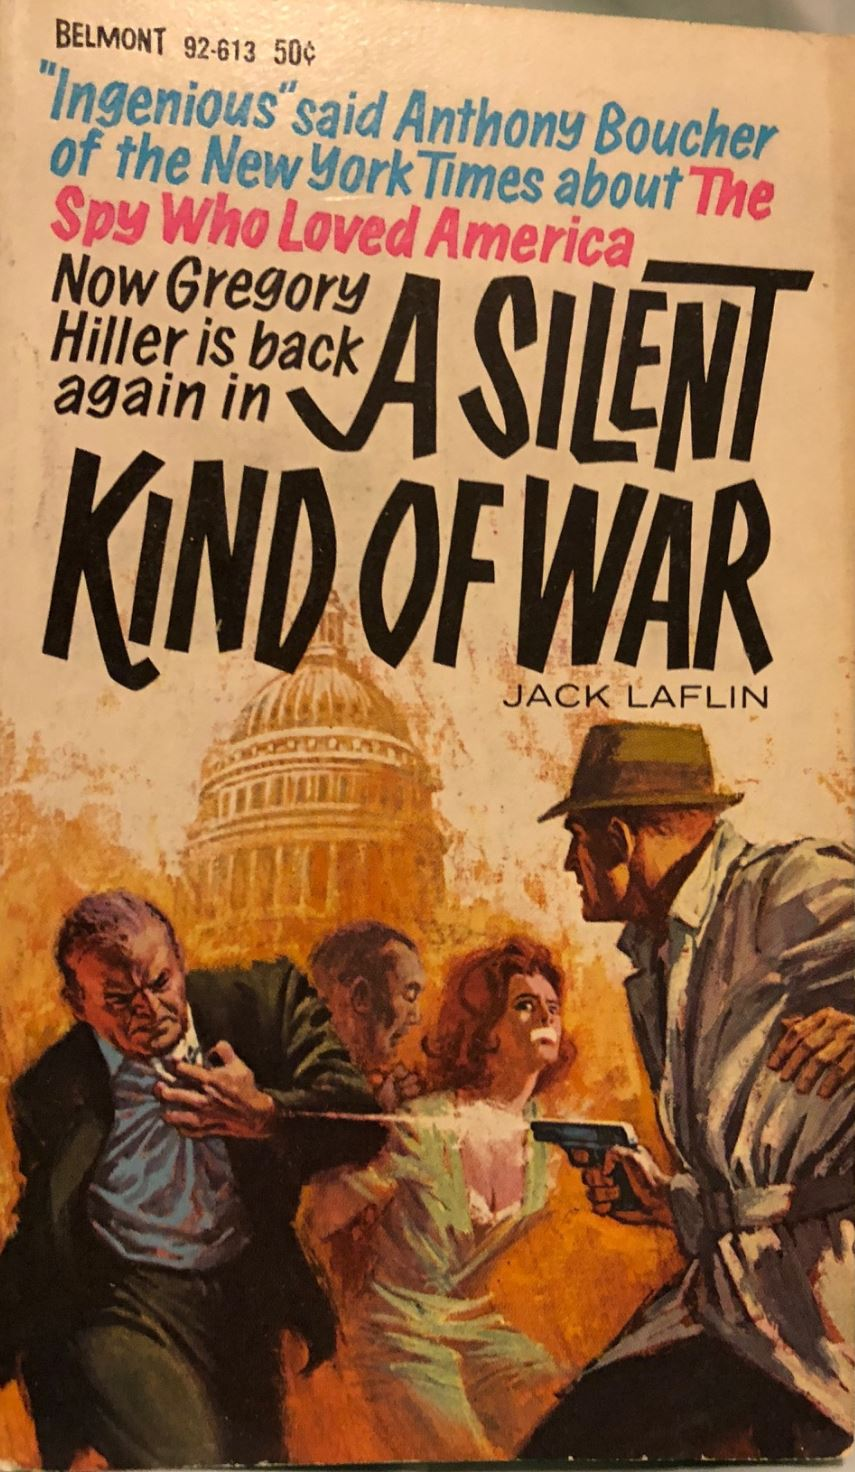 Paperback warrior march 2018 following the success of ian flemings novels nearly every paperback publisher of the 1960s commissioned espionage series novels with varying results fandeluxe Image collections